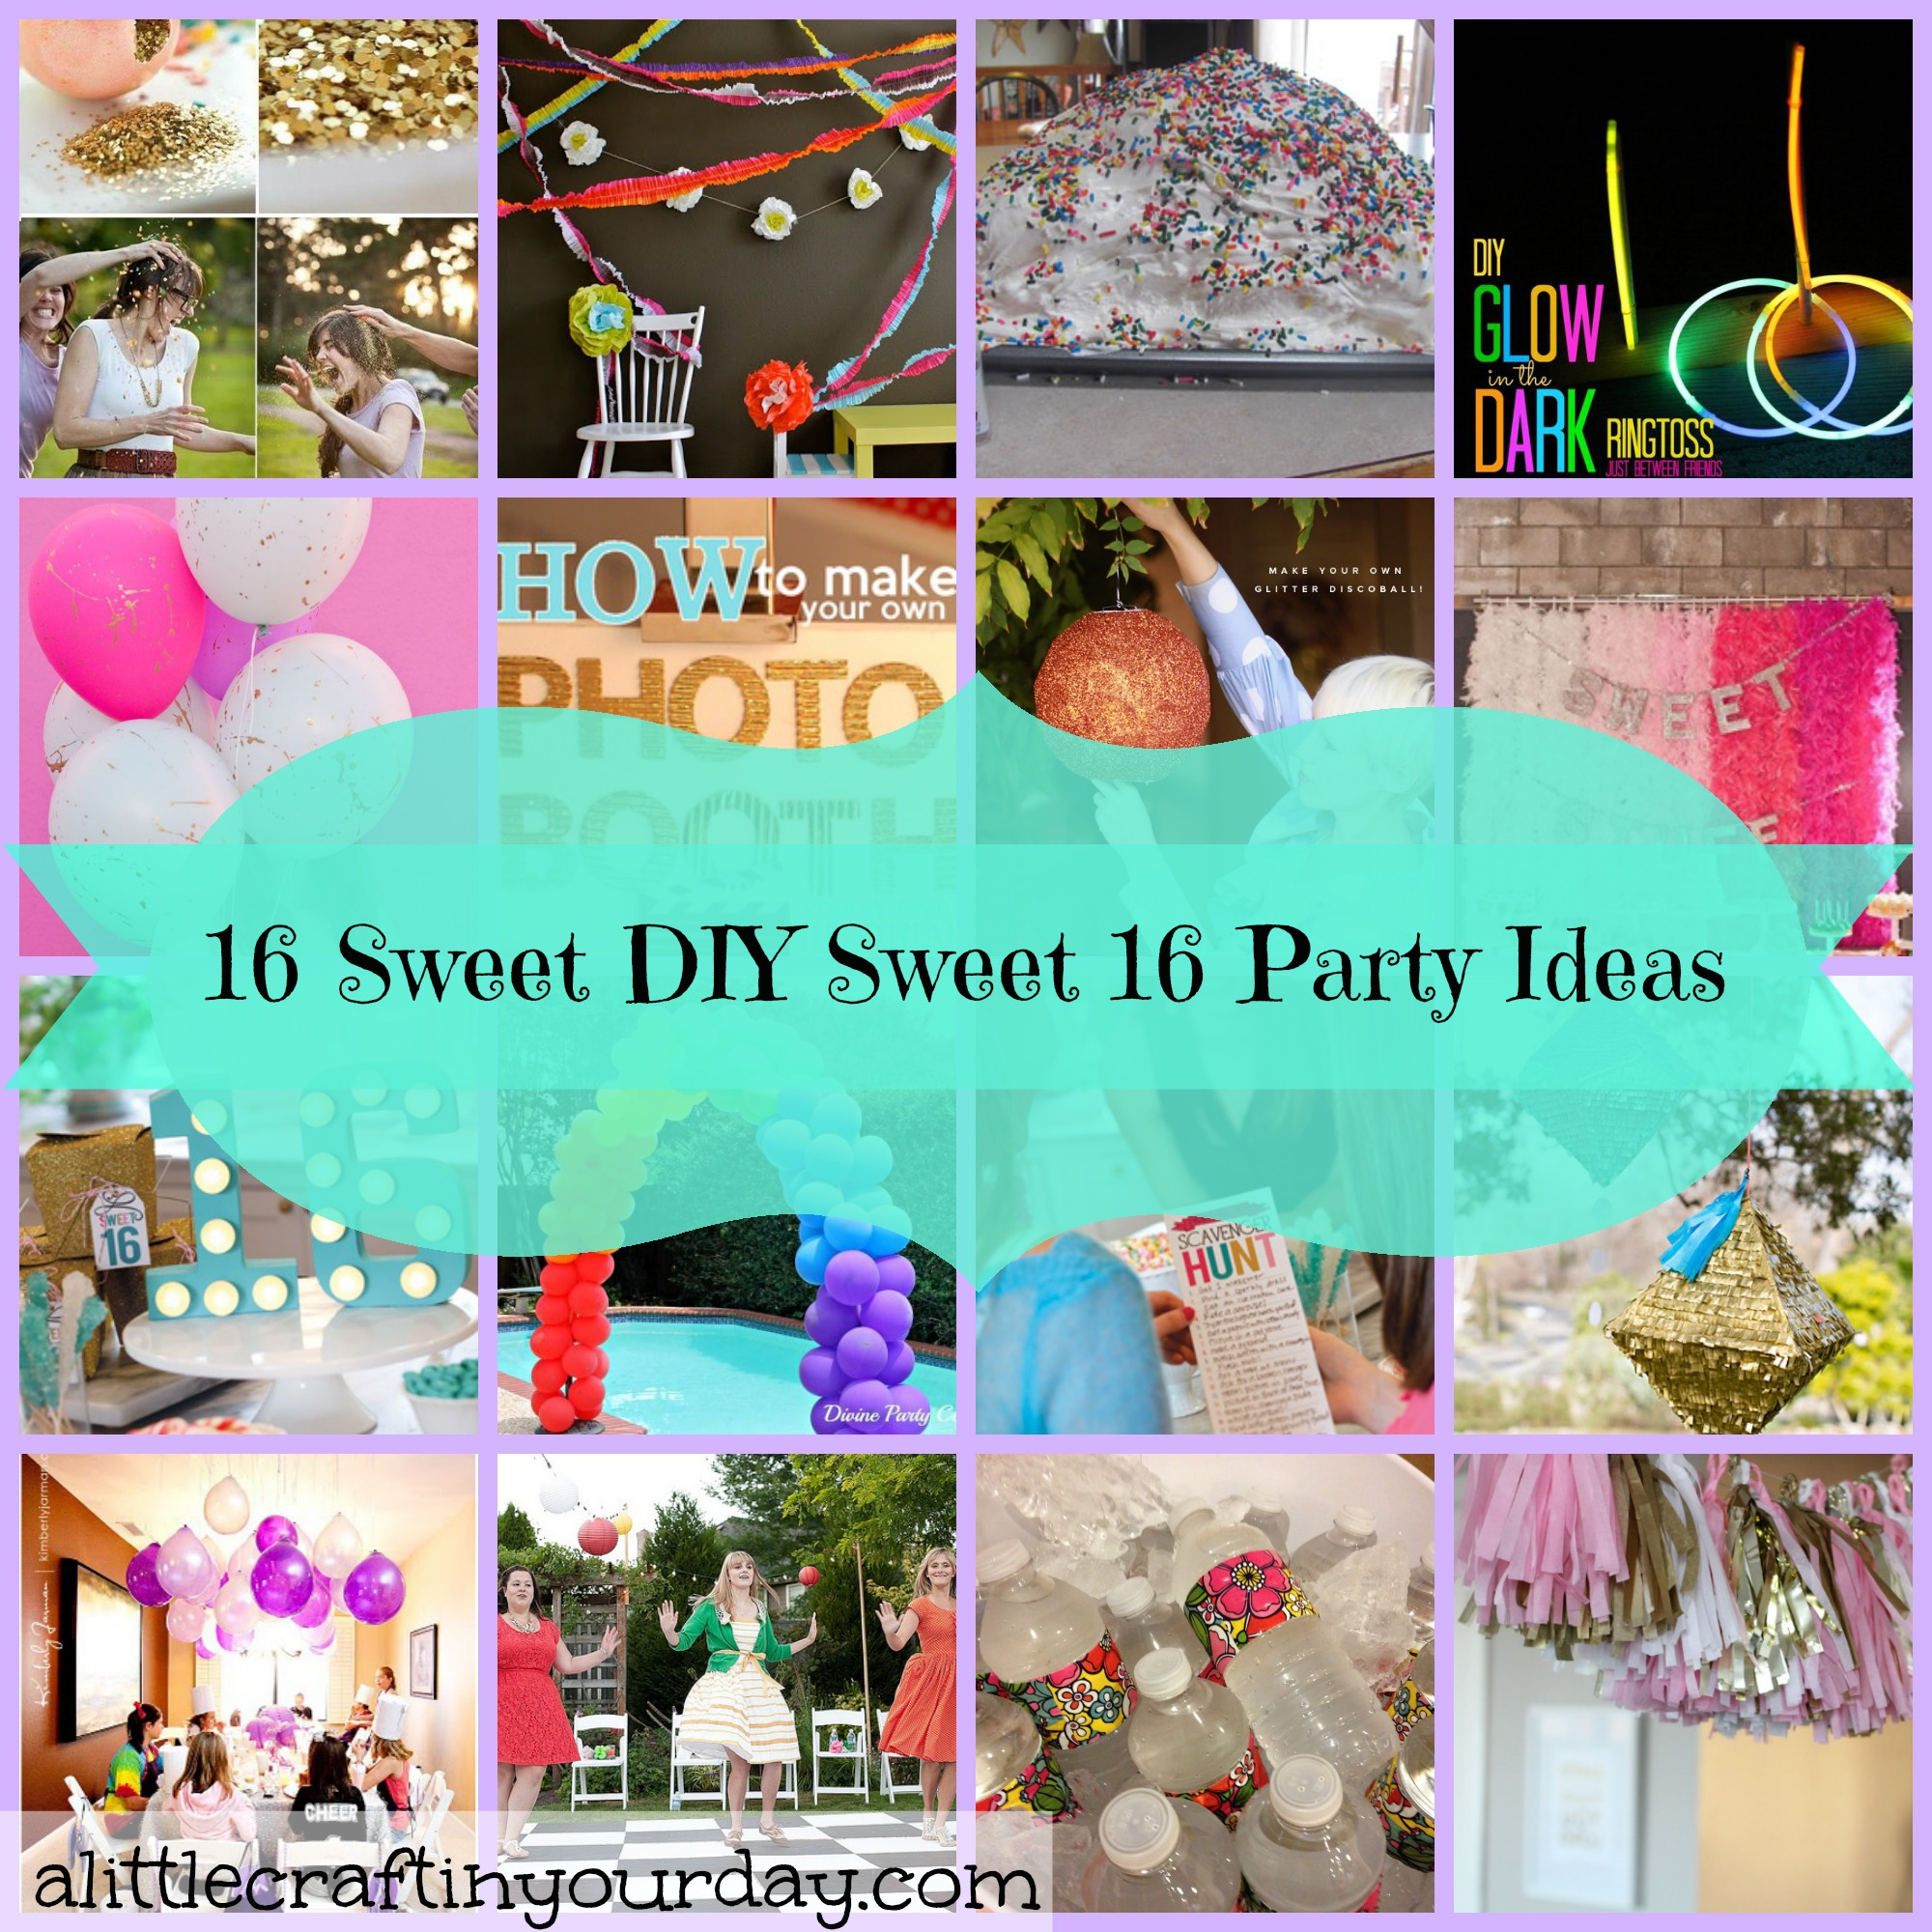 16 sweet diy sweet 16 party ideas a little craft in your day 930 16 sweet diy sweet 16 party ideas 16sweetdiysweet16partyideas solutioingenieria